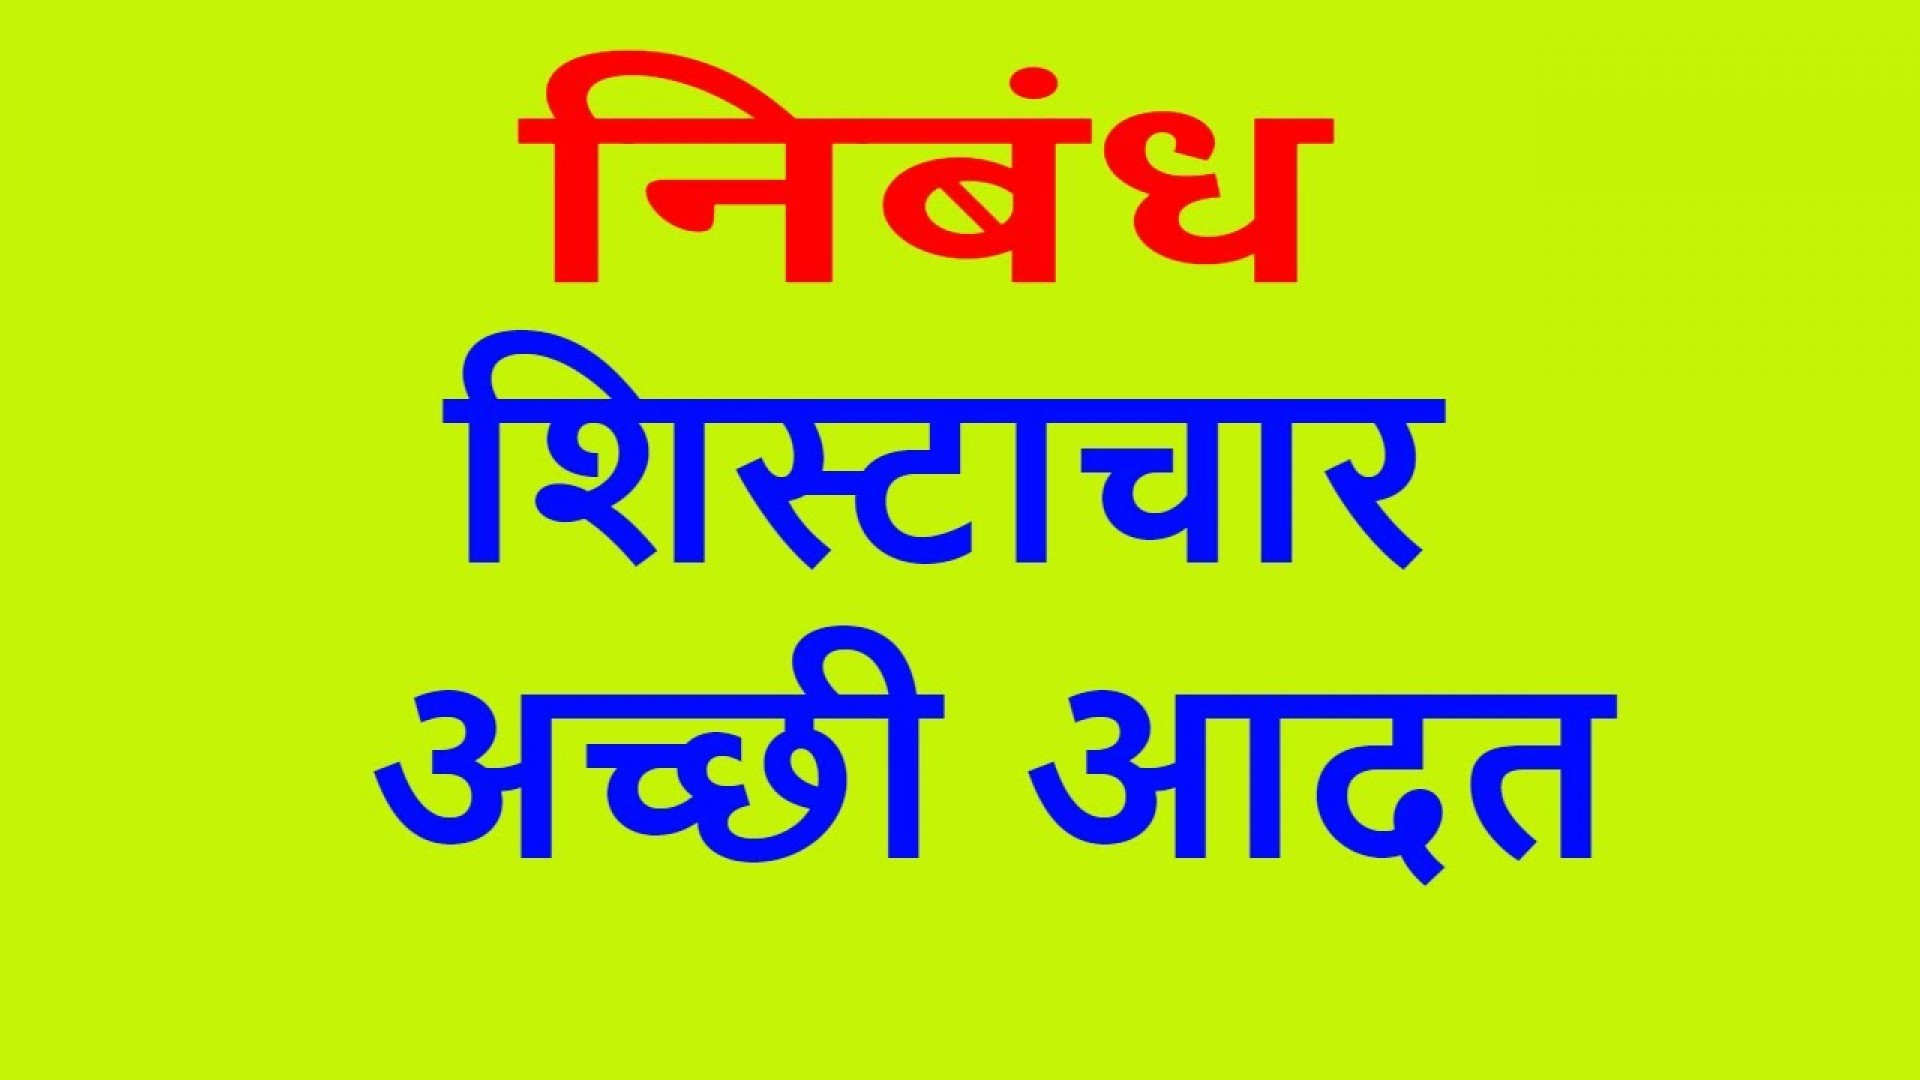 017 Maxresdefault Essay Example Good Habits In Exceptional Hindi Food Wikipedia 1920